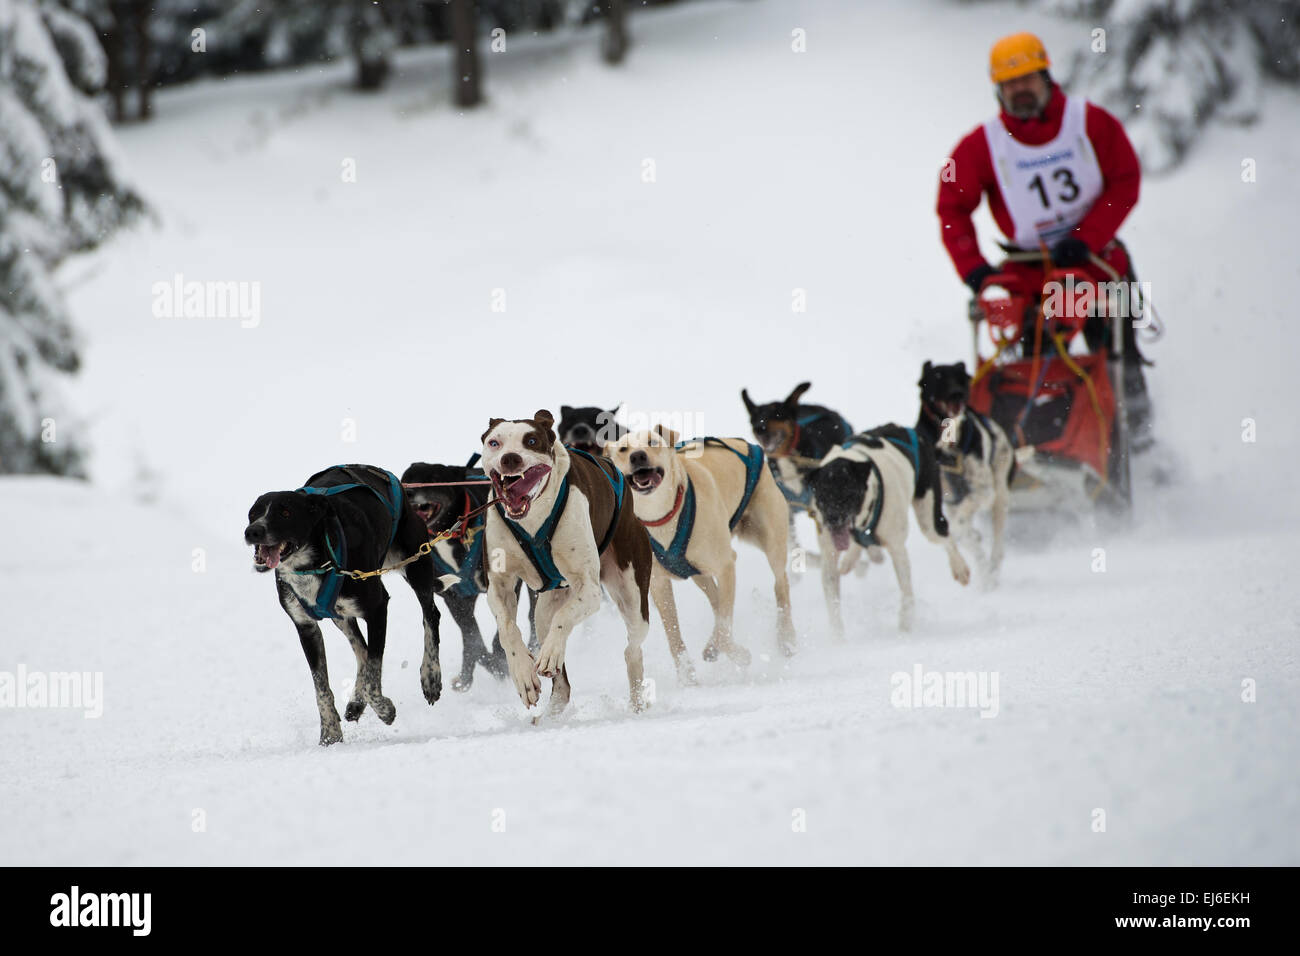 Dogs and musher during sleddog speed racing. - Stock Image